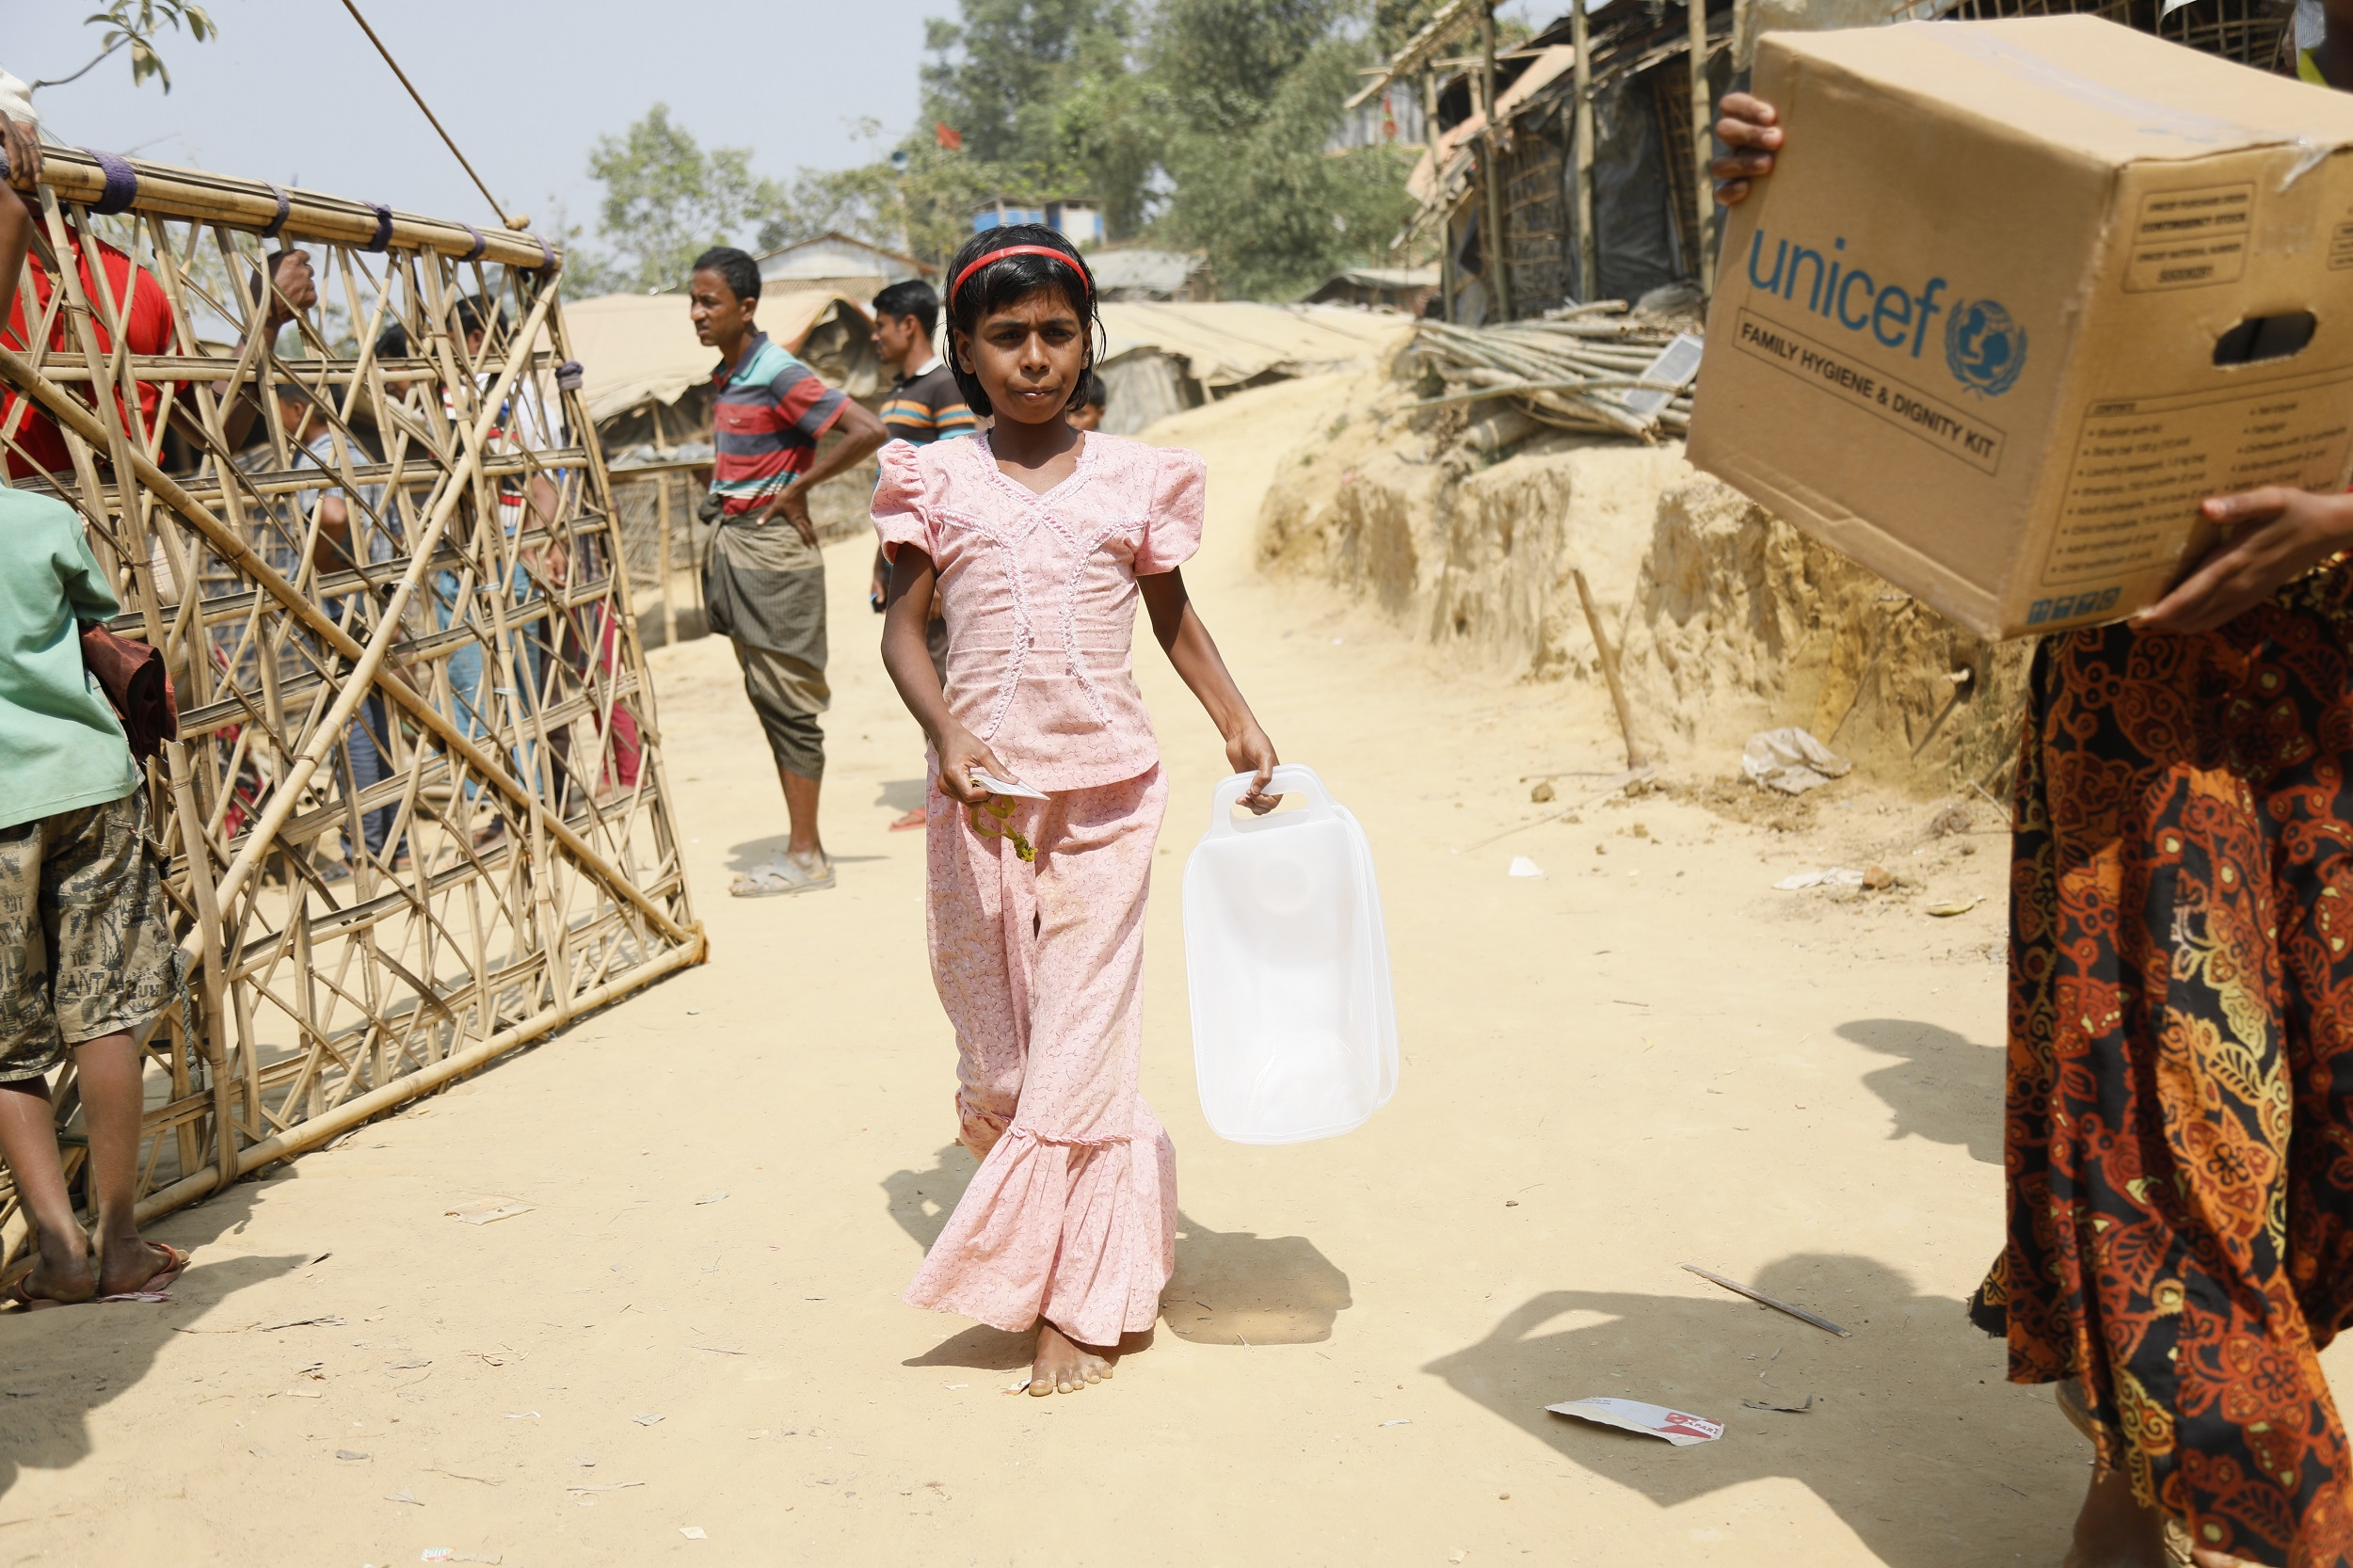 A girl in a pink dress holding a plastic jerrycan walks towards us